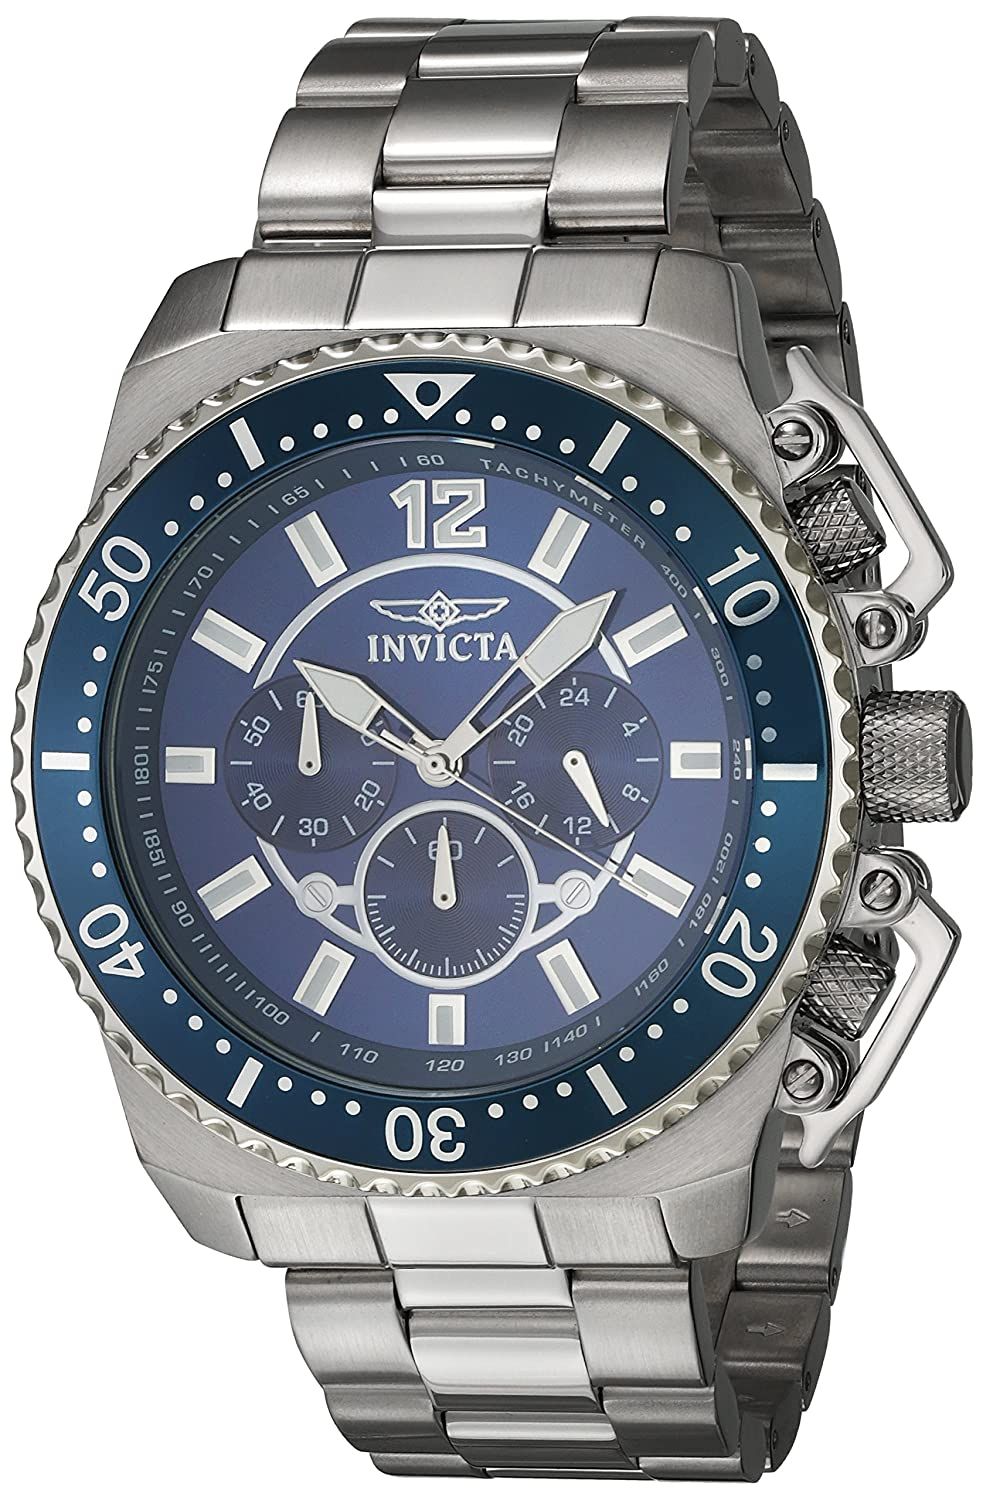 Invicta Men s Pro Diver Quartz Watch with Stainless-Steel Strap, Silver, 24 Model 21953